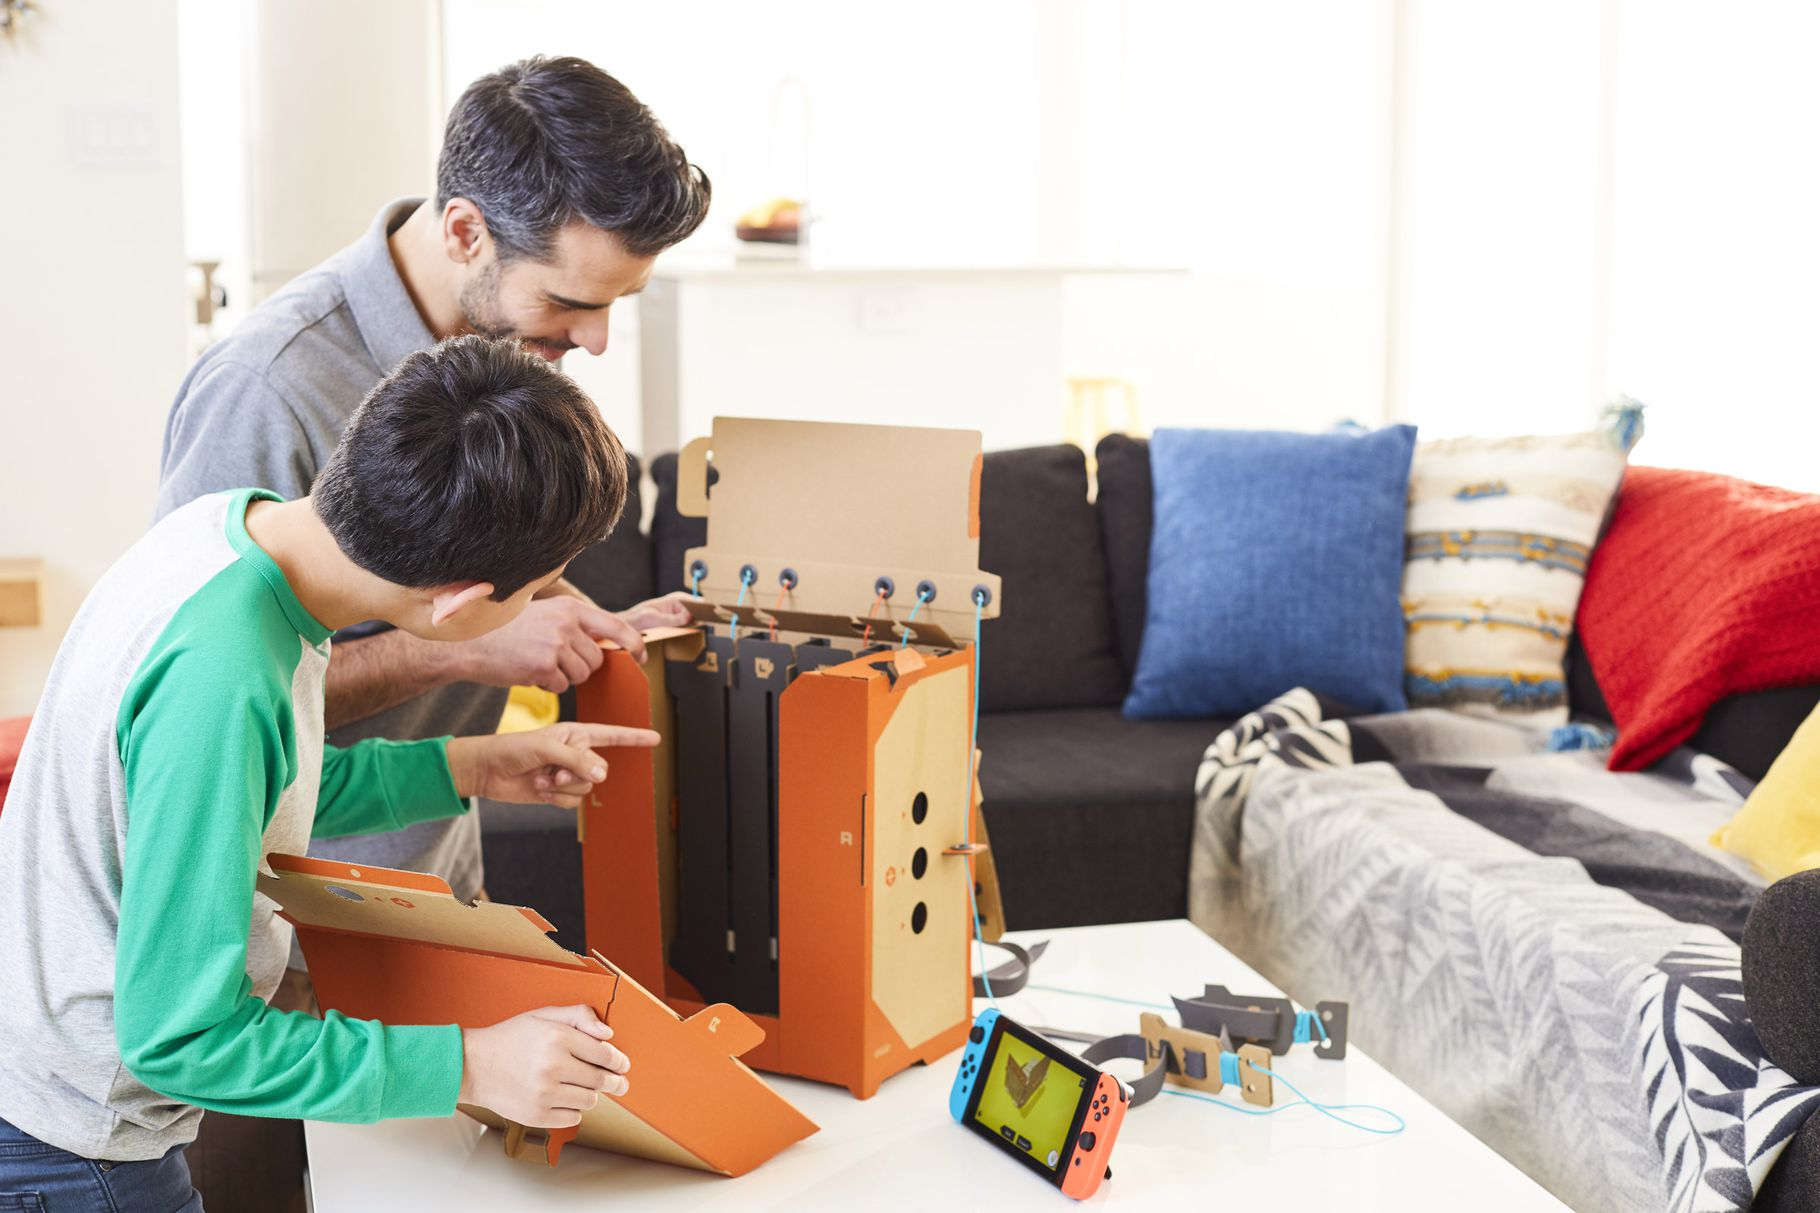 Switch_NintendoLabo_photo_06.0